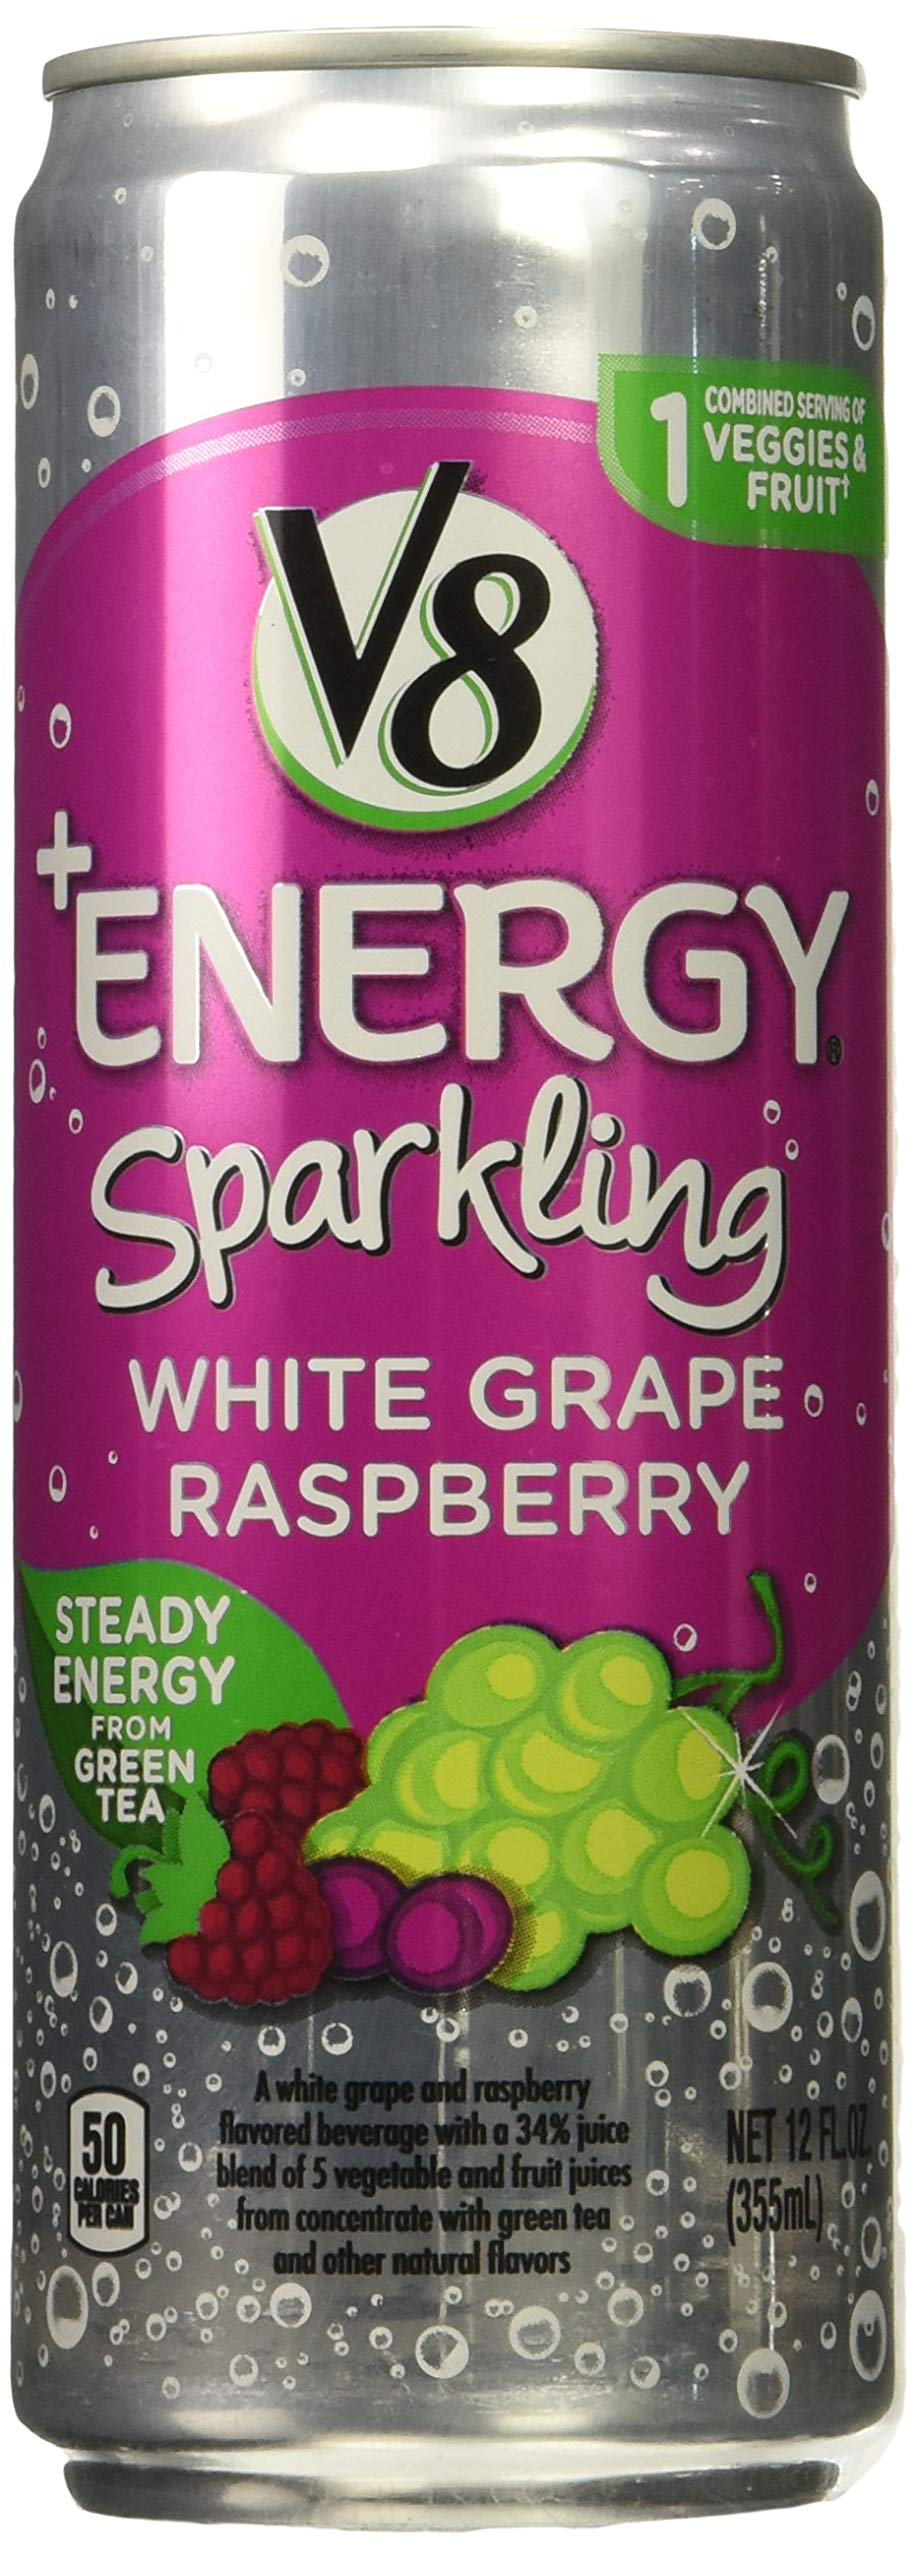 V8 +Energy, Sparkling Juice Drink with Green Tea, White Grape Raspberry, 12 oz. Can (Pack of 12)